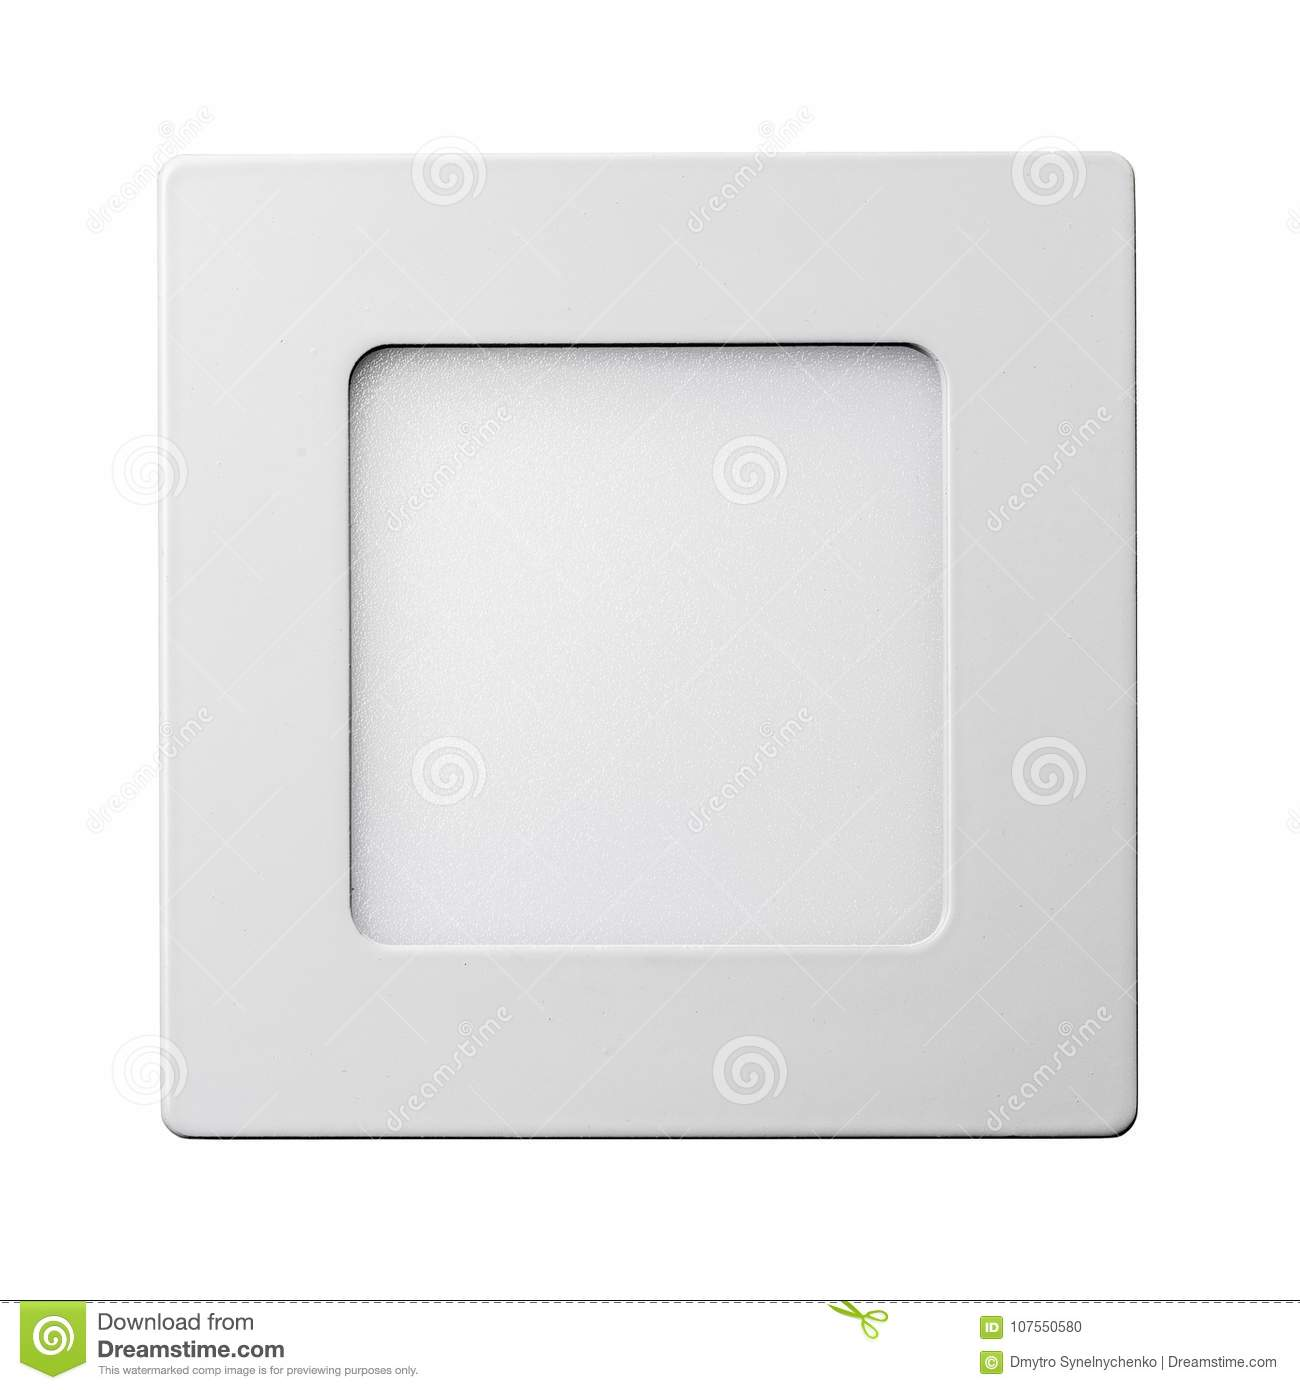 Led Verlichting Met Los Paneel Custom Led Lamp Panel Stock Photo Image Of Device 107550580